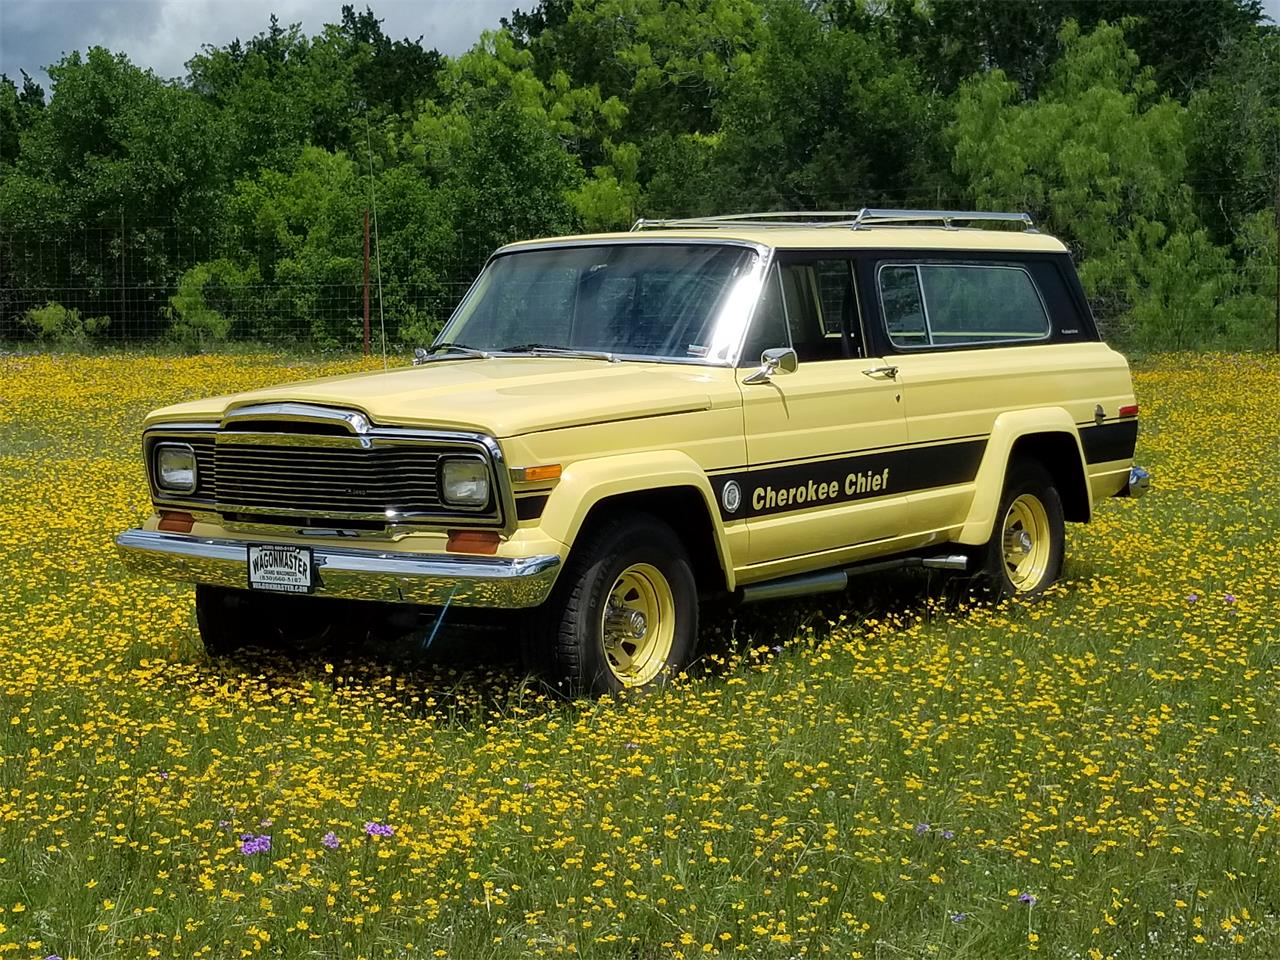 1979 Jeep Cherokee Chief for sale in Kerrville, TX – photo 3